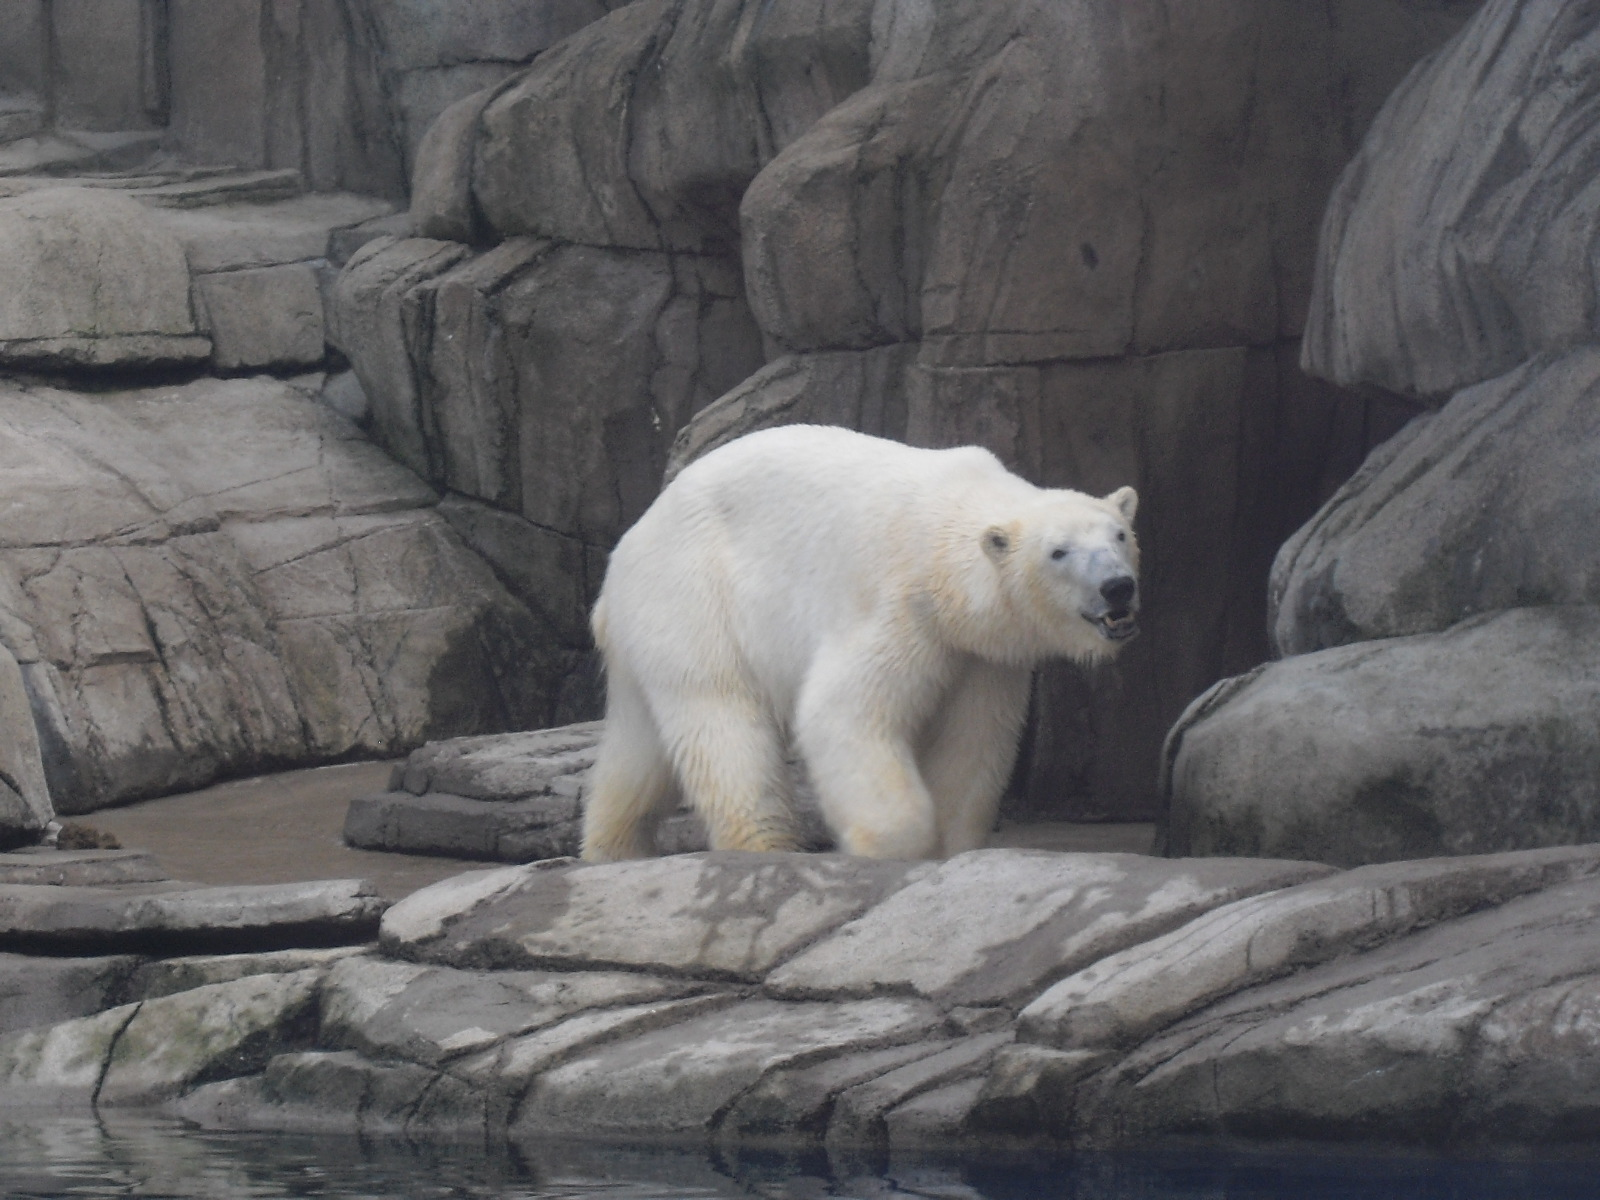 June 30, 2010. Polar Bear at Pittsburgh Zoo. Photo by ChubbyWimbus at wts wikivoyage [CC BY-SA 3.0 (https://creativecommons.org/licenses/by-sa/3.0)], via Wikimedia Commons